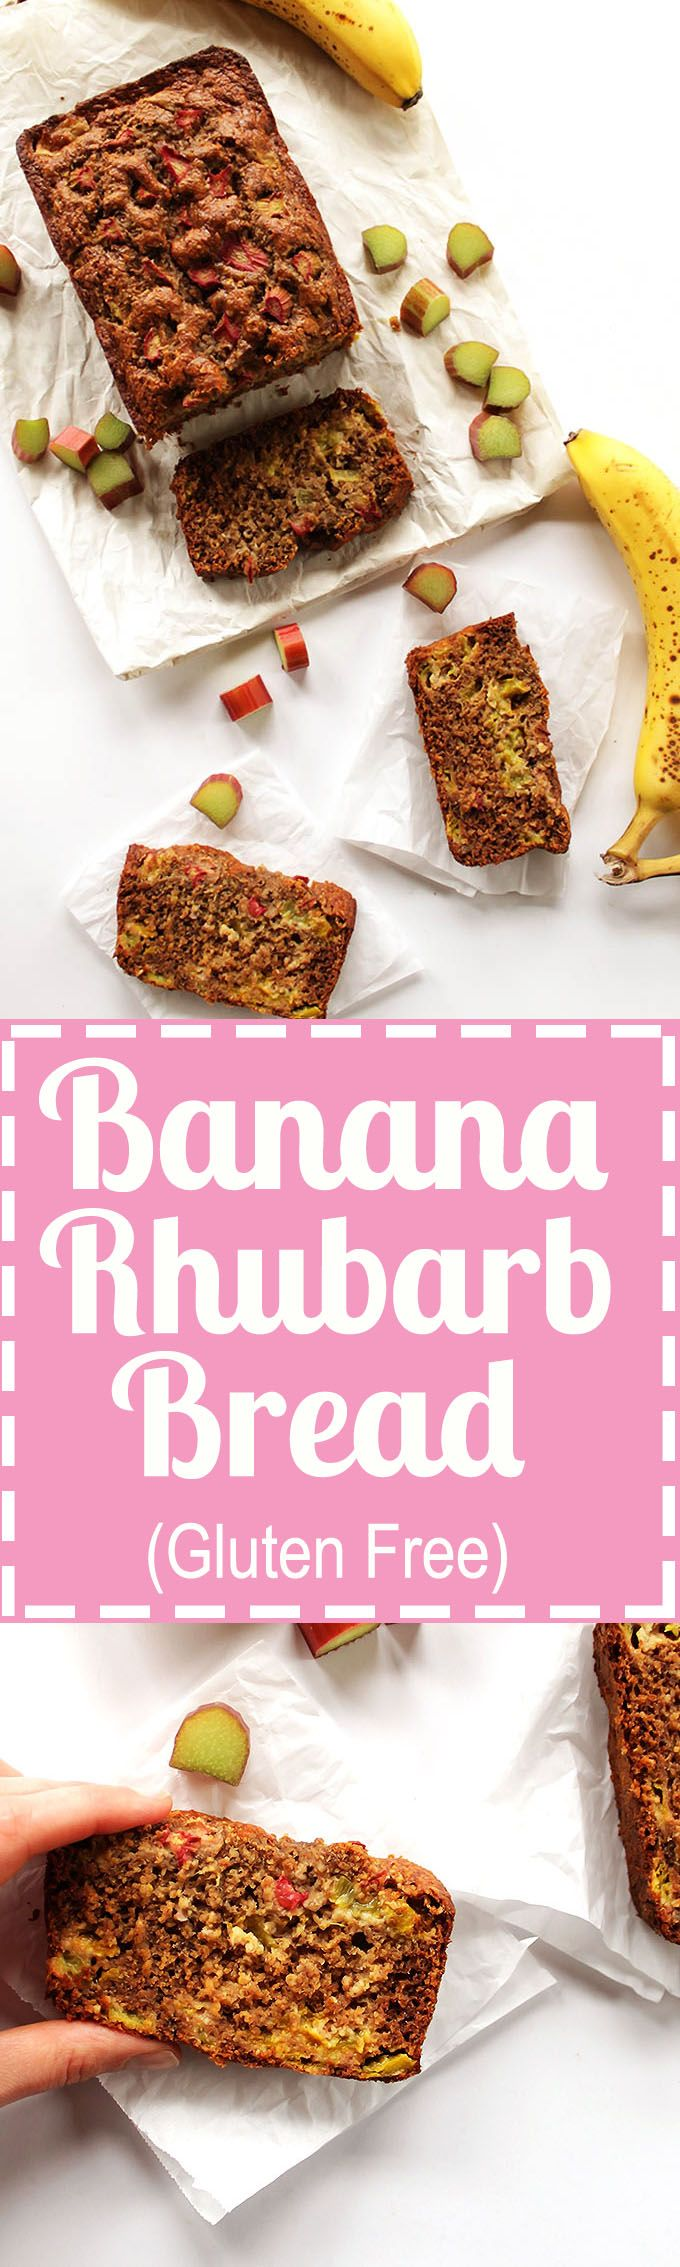 Banana Rhubarb Bread - Moist banana bread with tart rhubarb studded through out each piece. Great recipe for spring time! Gluten Free!